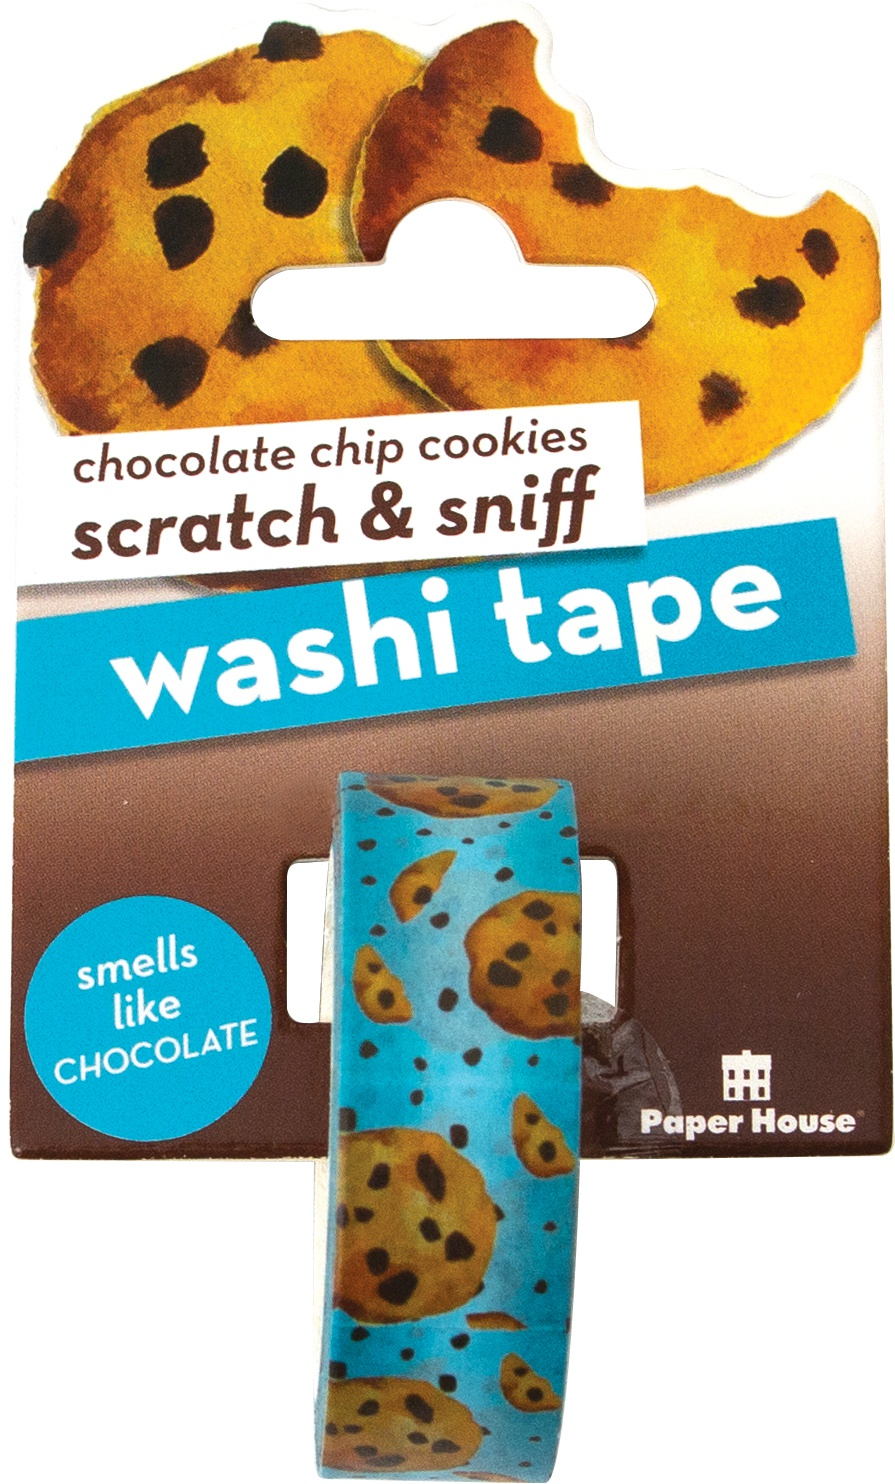 Paper House Scratch & Sniff Washi Tape-Chocolate Chip Cookies, 15mmX8m